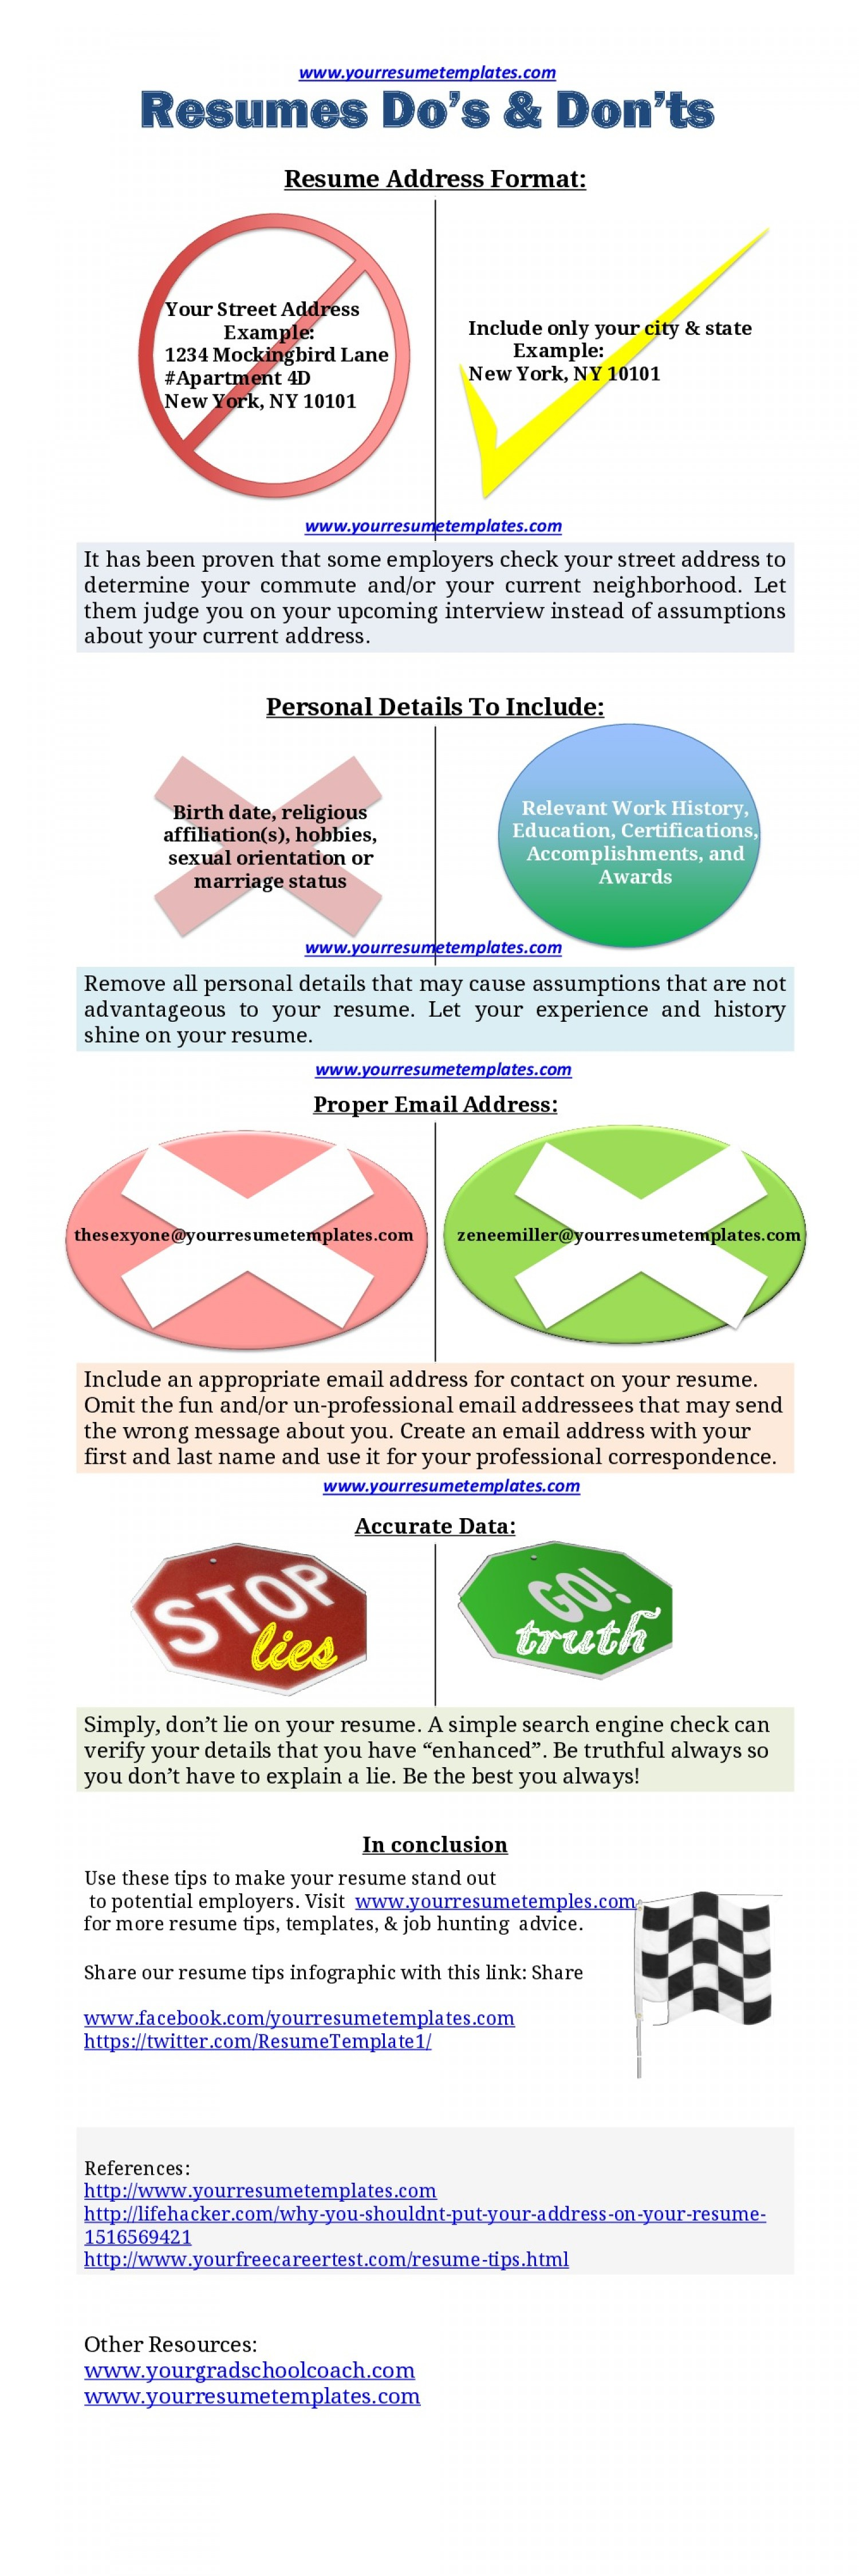 Read More Tips For Your Resume On Tipsographic Com Resume